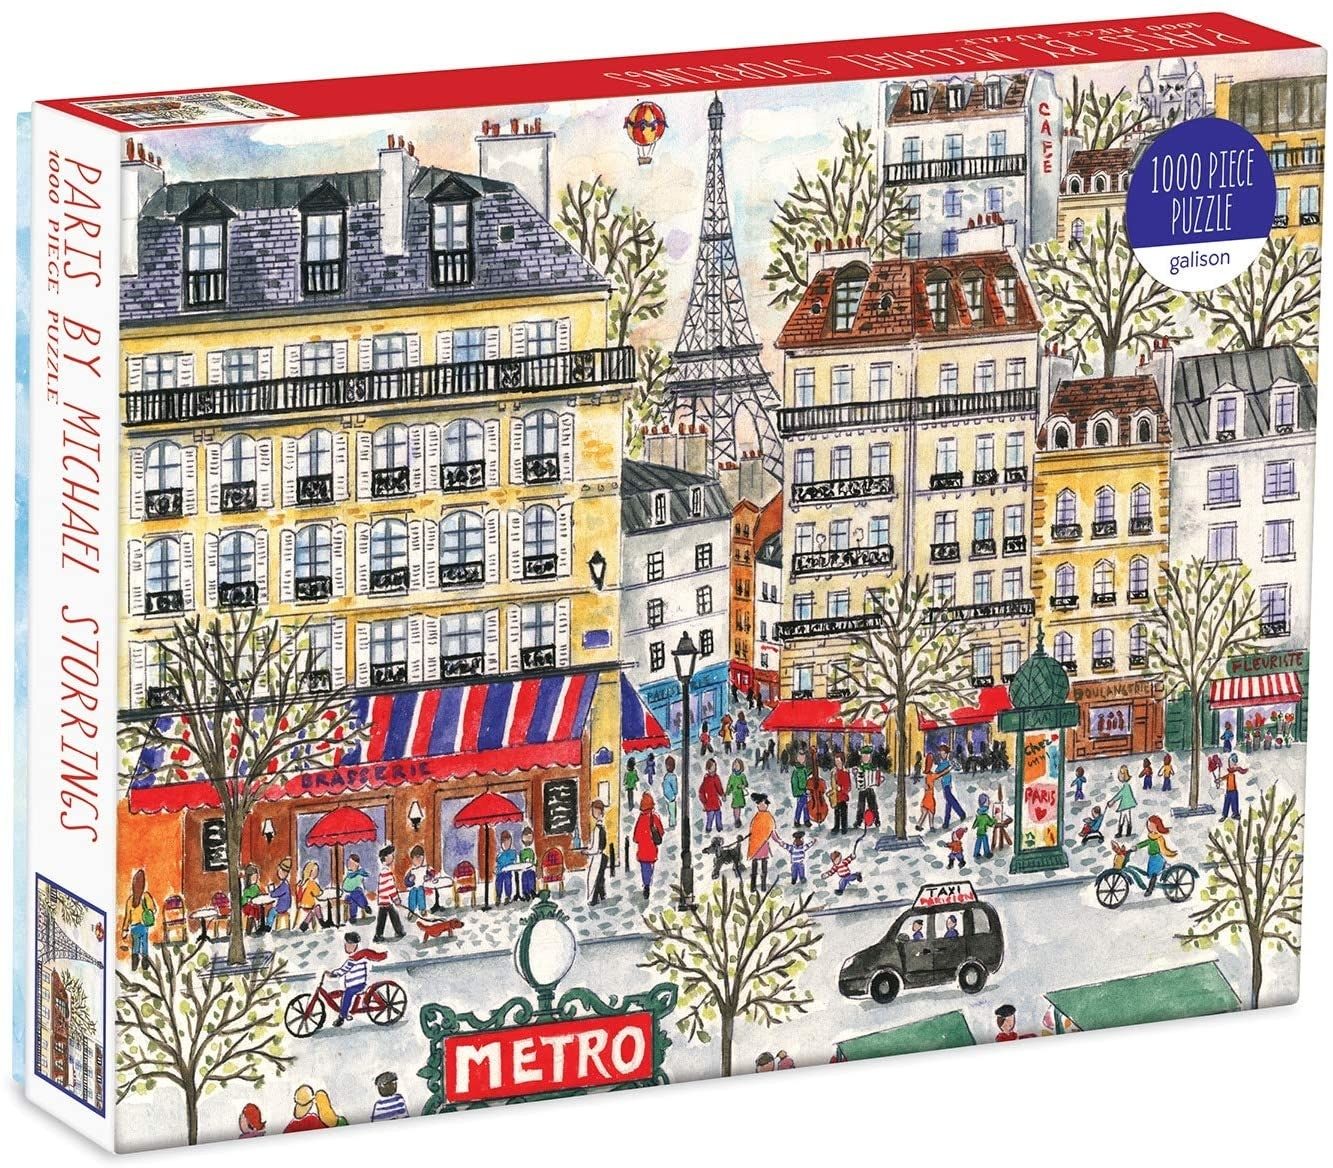 The Paris puzzle